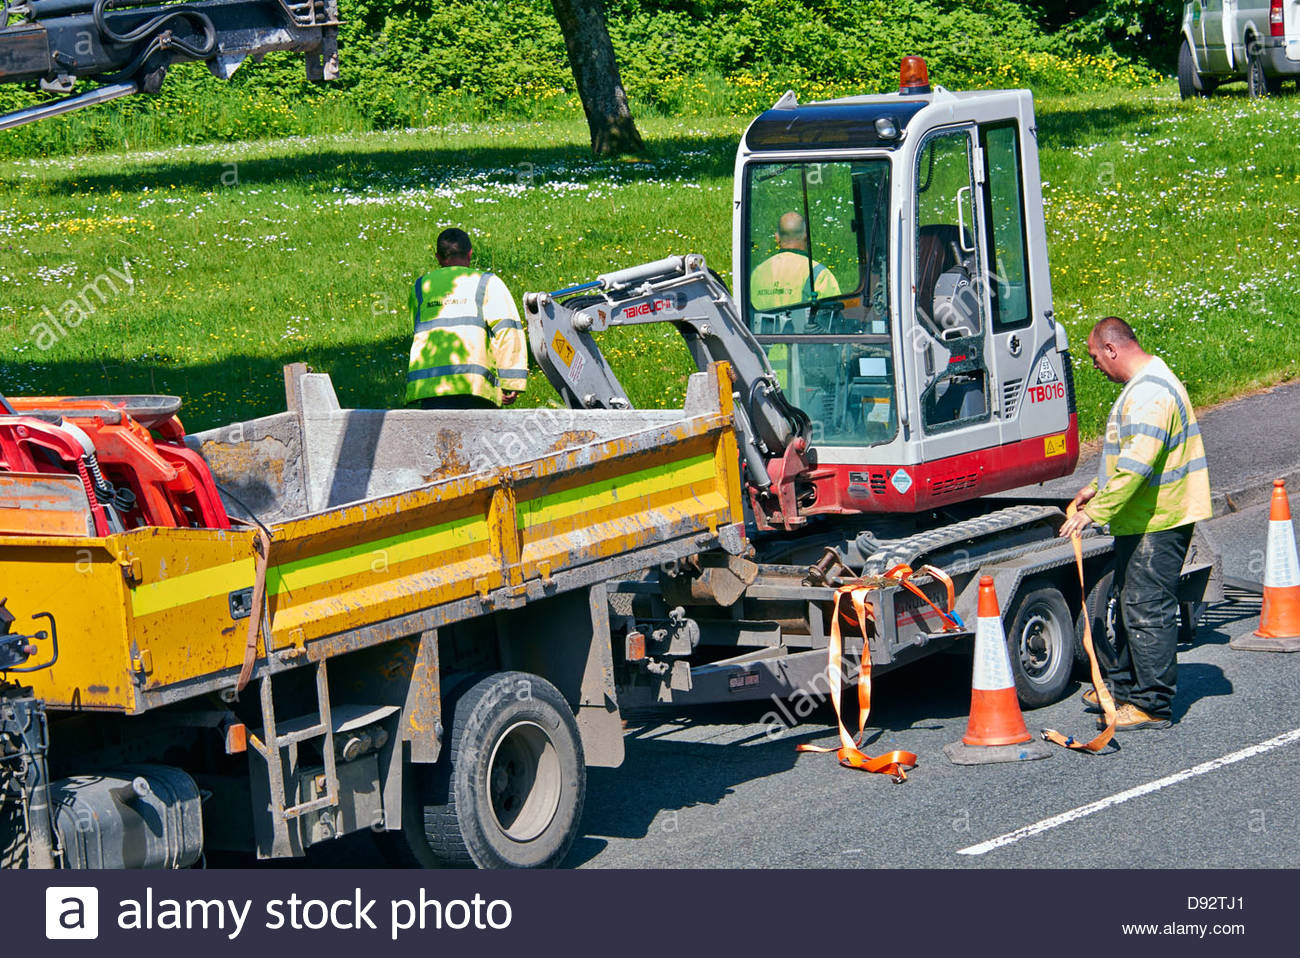 workman unstrapping secure straps on trailer to release mechanical excavator mini digger - Stock Image